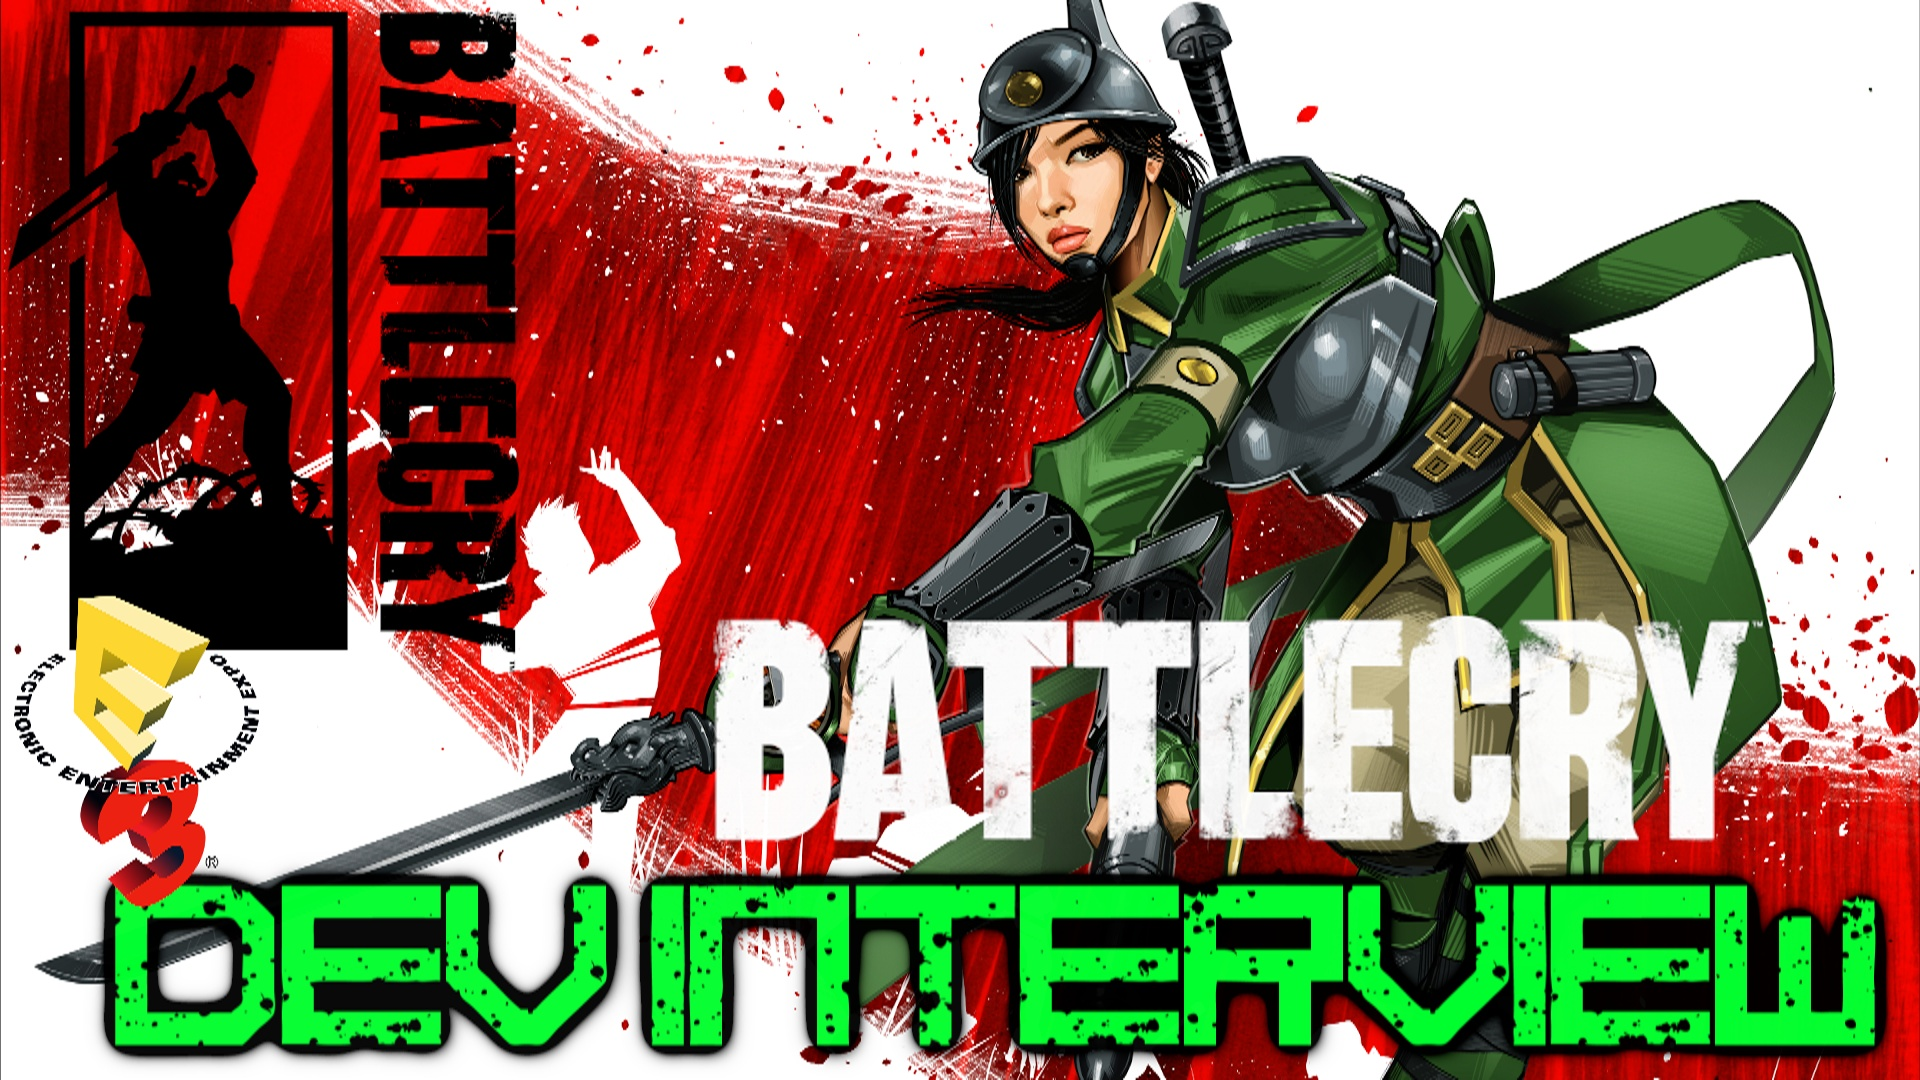 BATTLECRY - E3 2015 Dev Interview Video Thumbnail